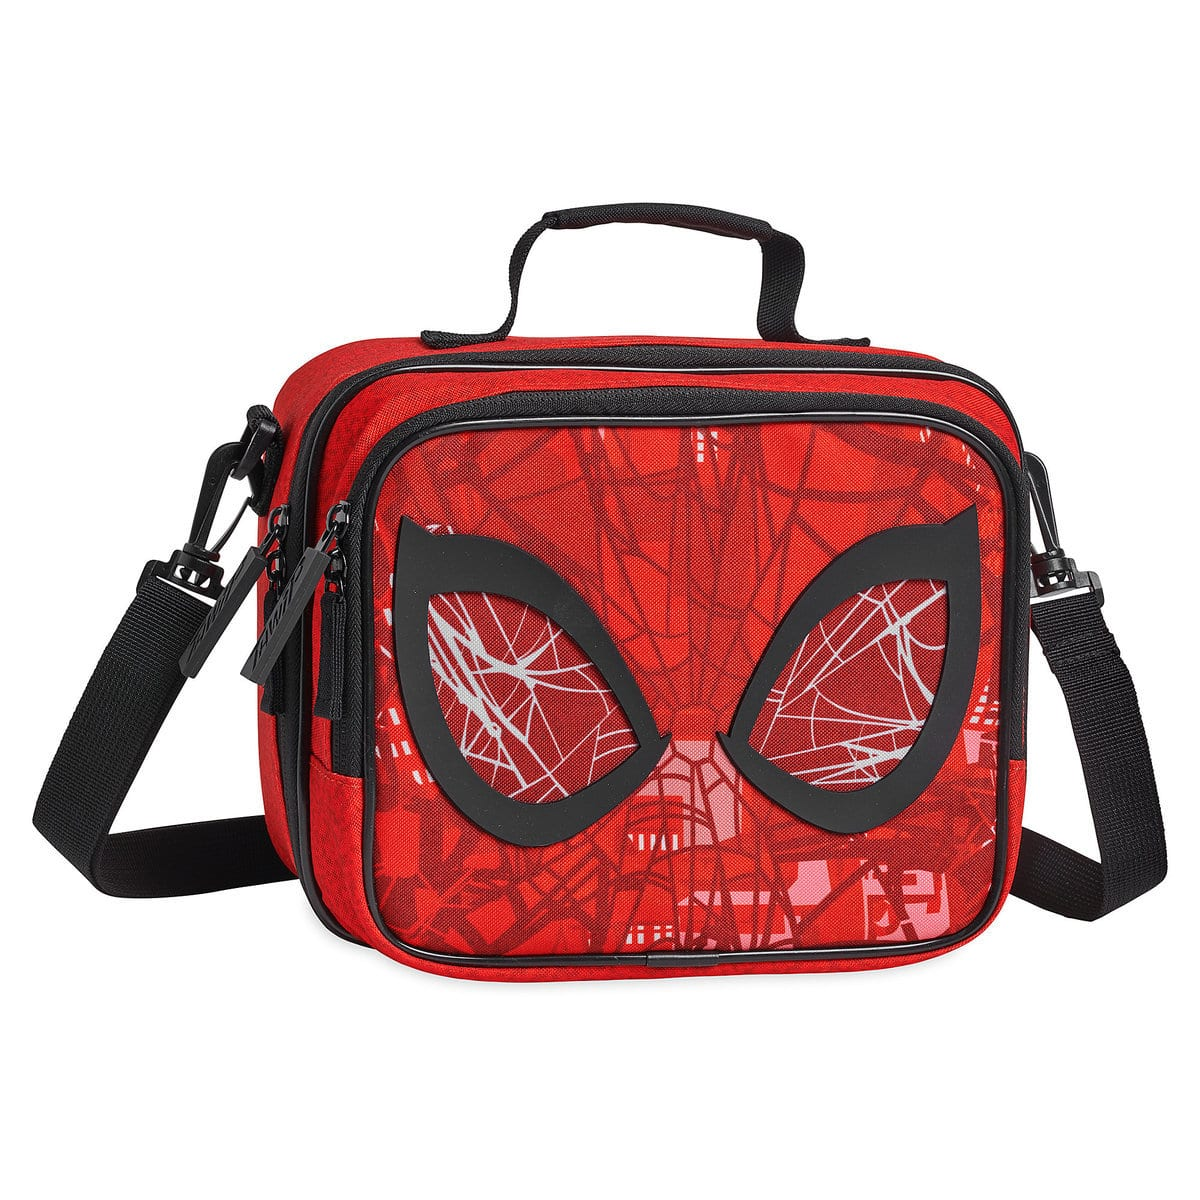 Disney Lunch Bags/Totes and Backpacks Up To 60% Off @Disney Store + Free Shipping Today Only